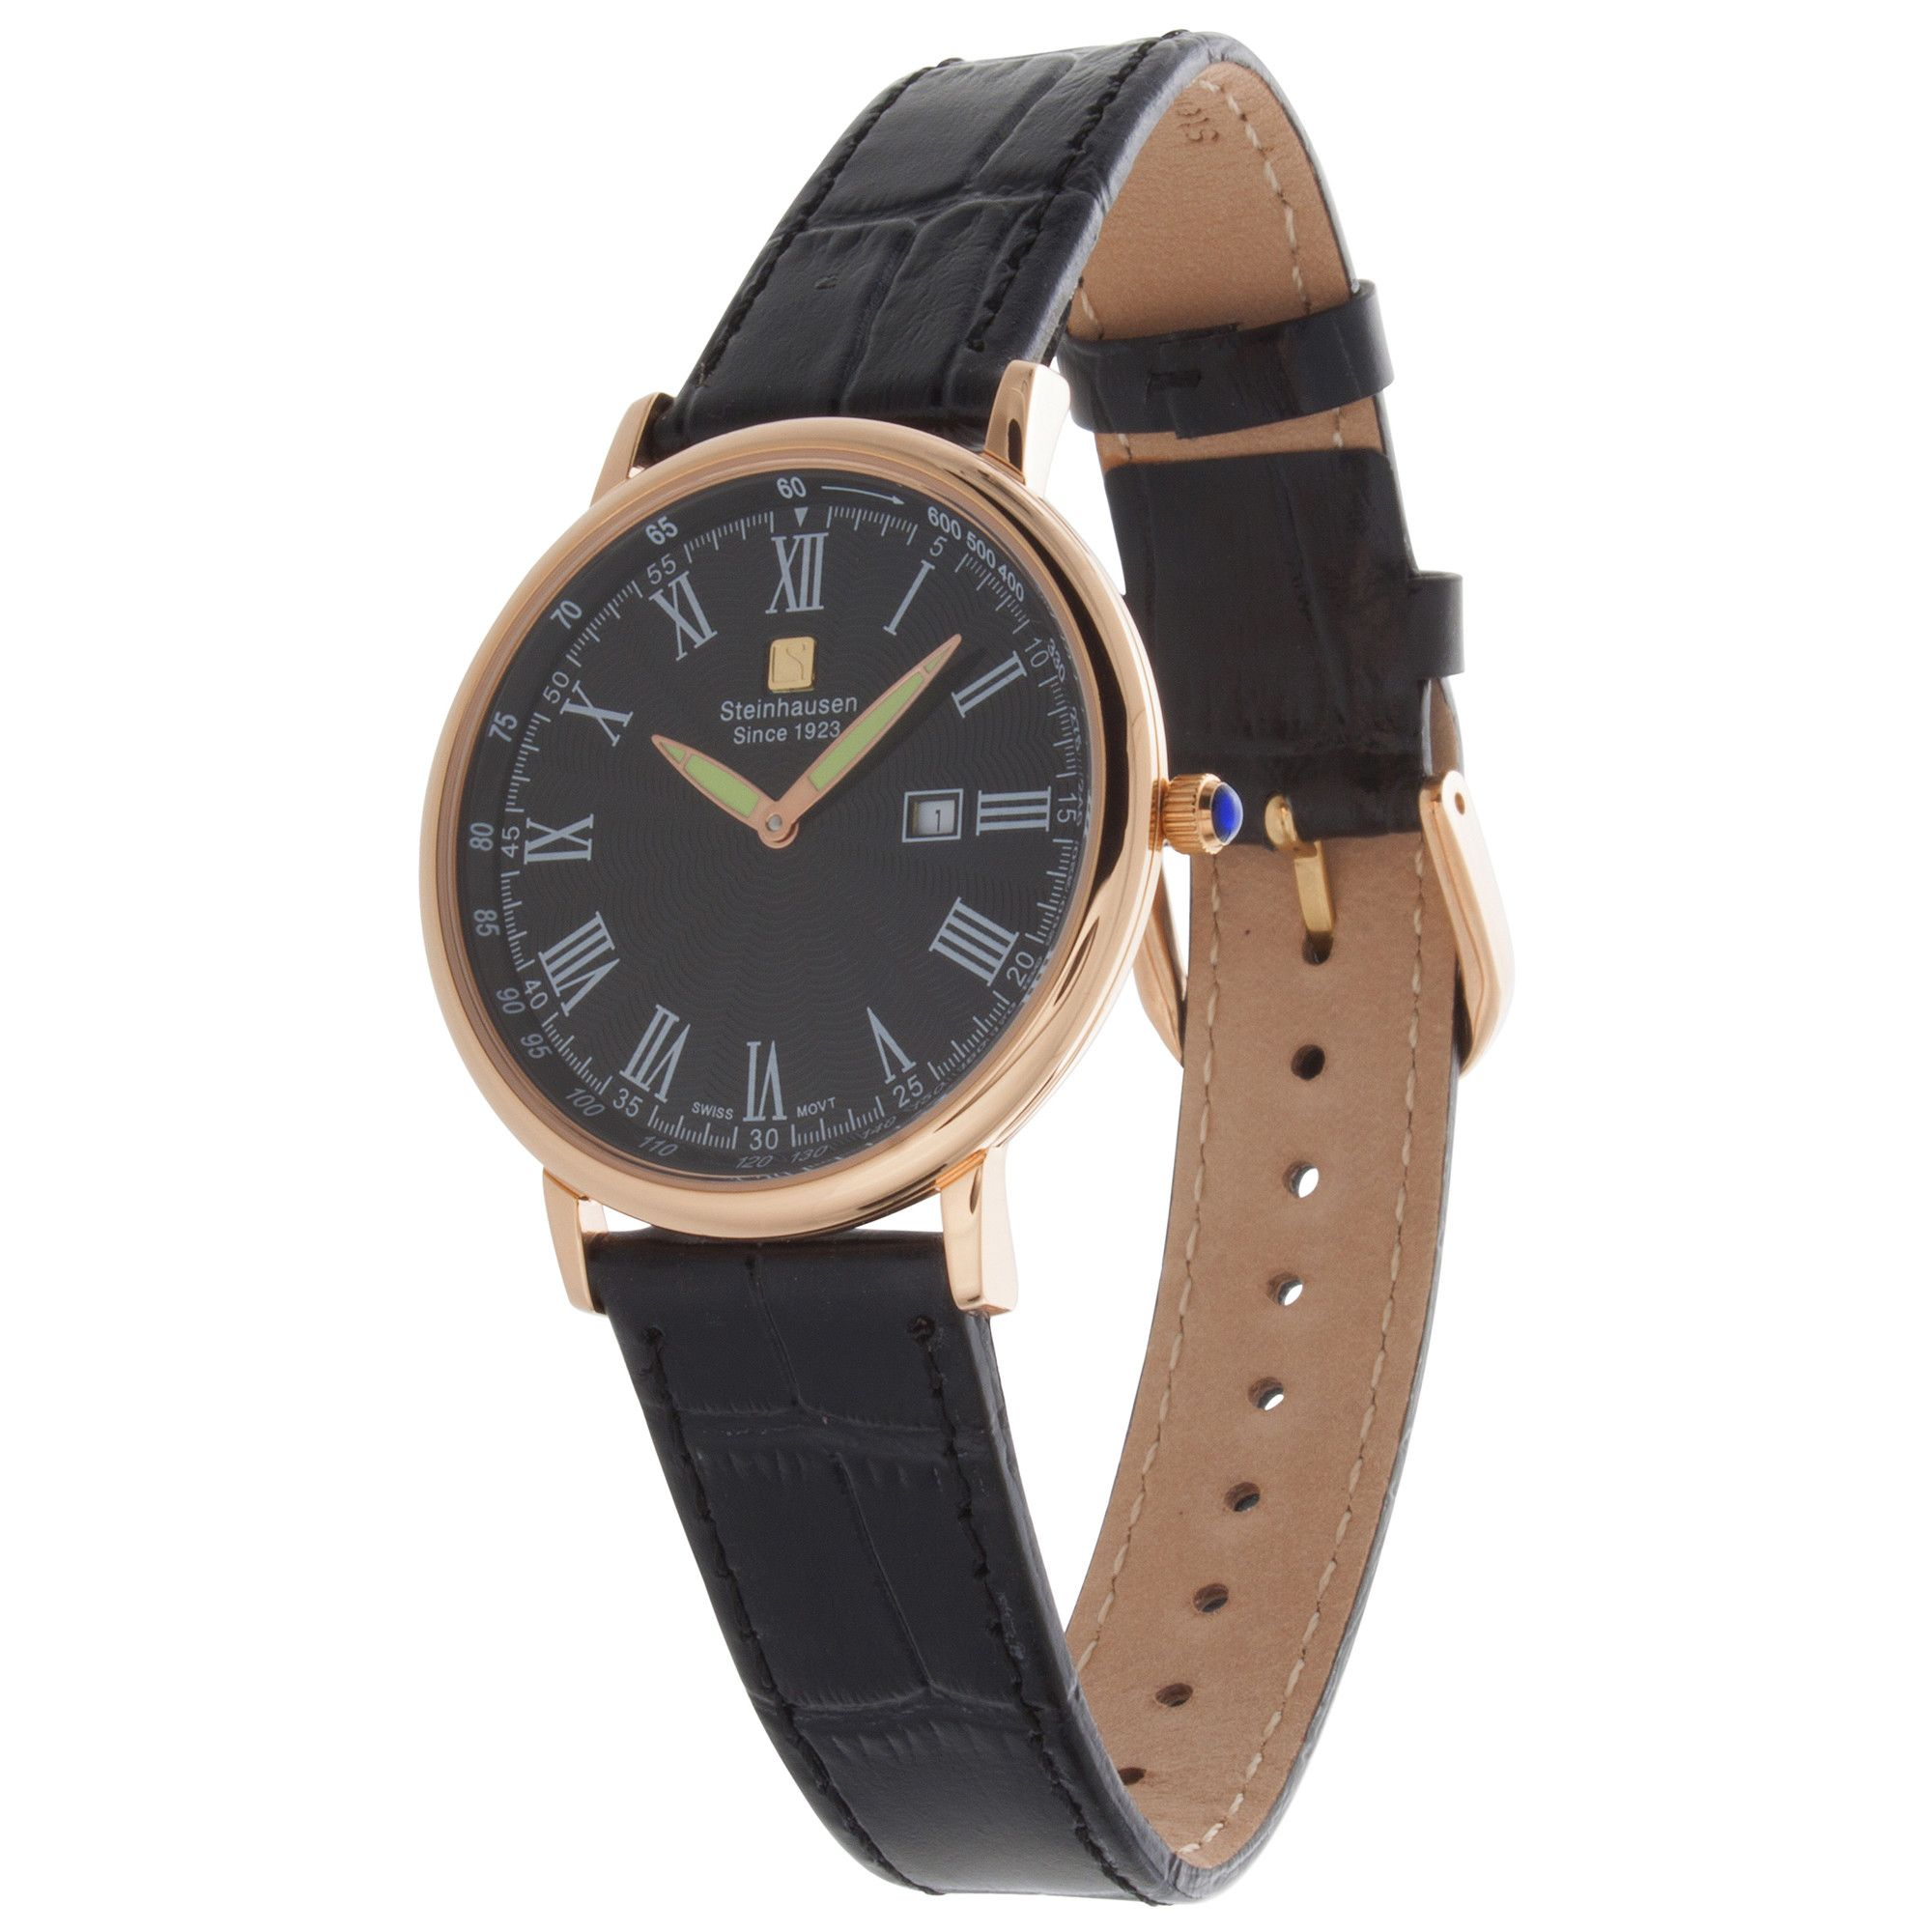 products watch band brown watches coffee rose cofffee clasp gold s bands blush leather italian women luxury classic vincero strap